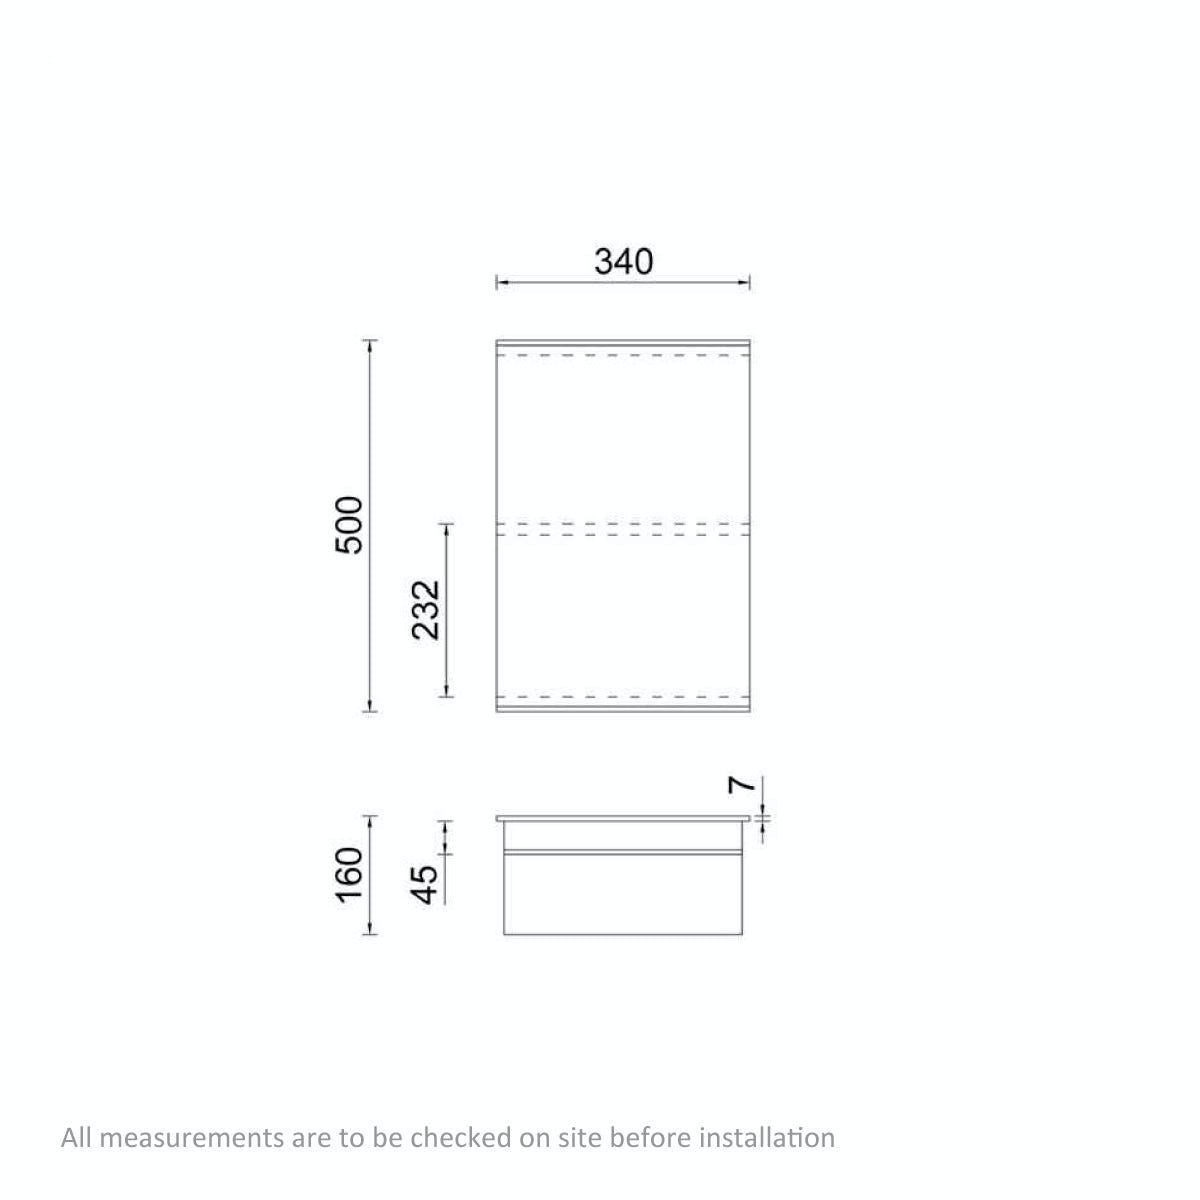 Dimensions for Orchard Twist stainless steel bathroom cabinet